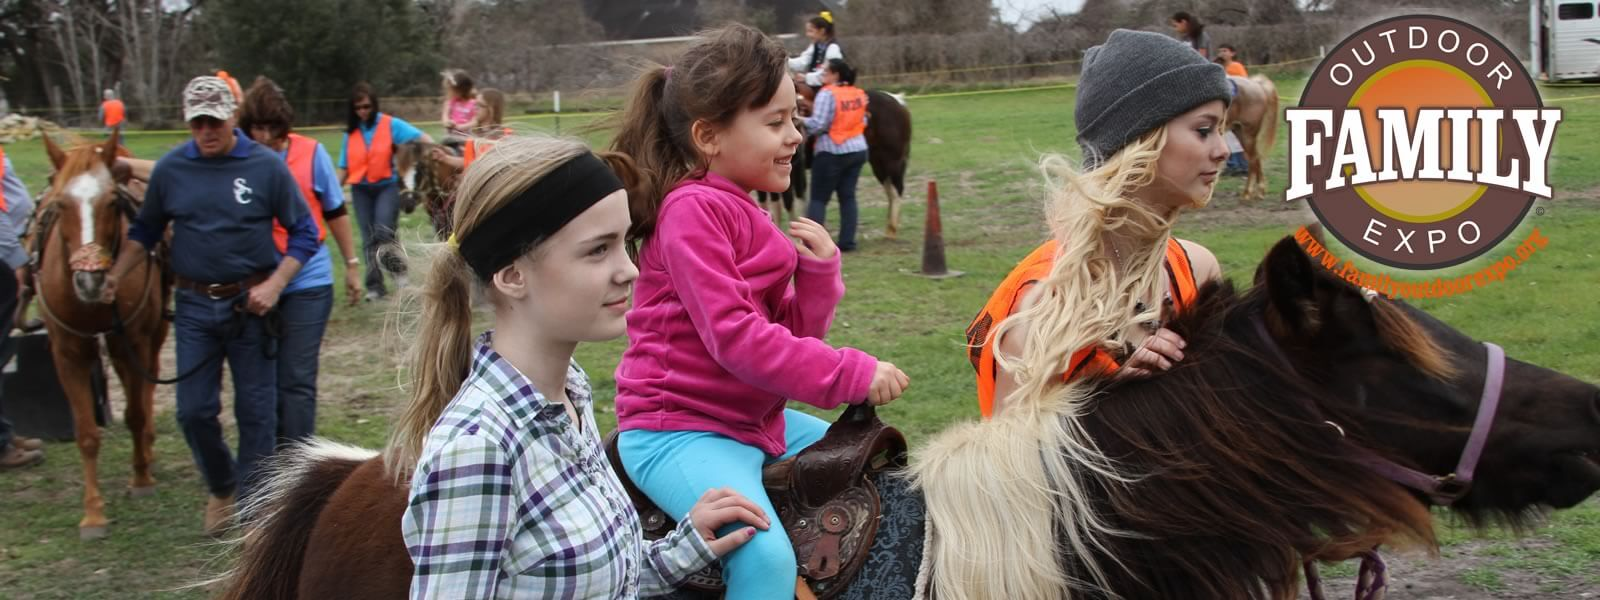 Pony at the Family Outdoor Expo